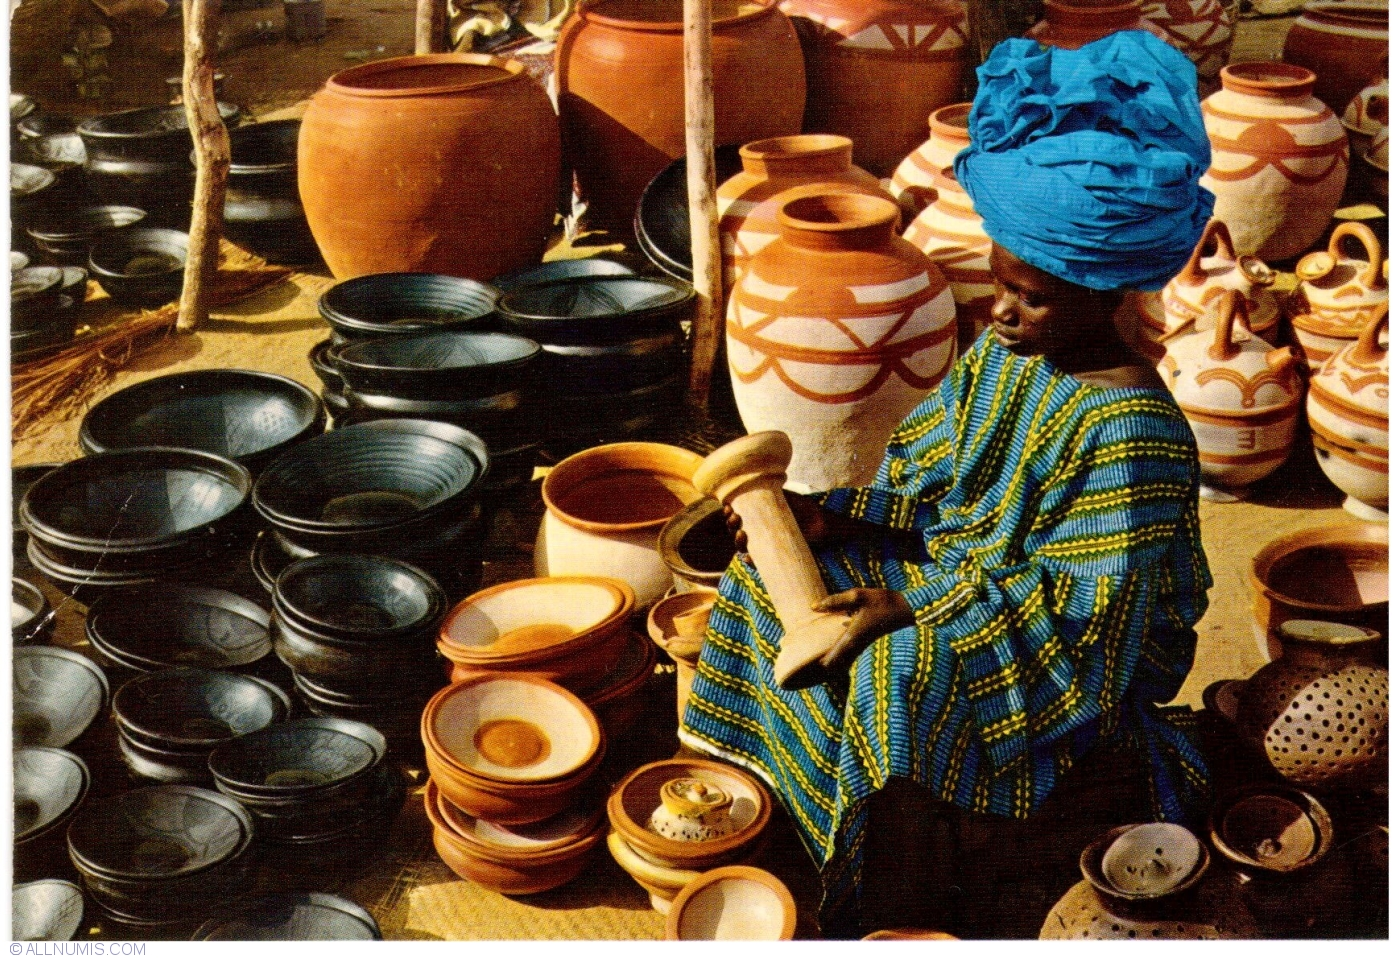 Wireless Internet Service Provider >> Ilorin: Home of Traditional Pottery - SwiftTalk Limited